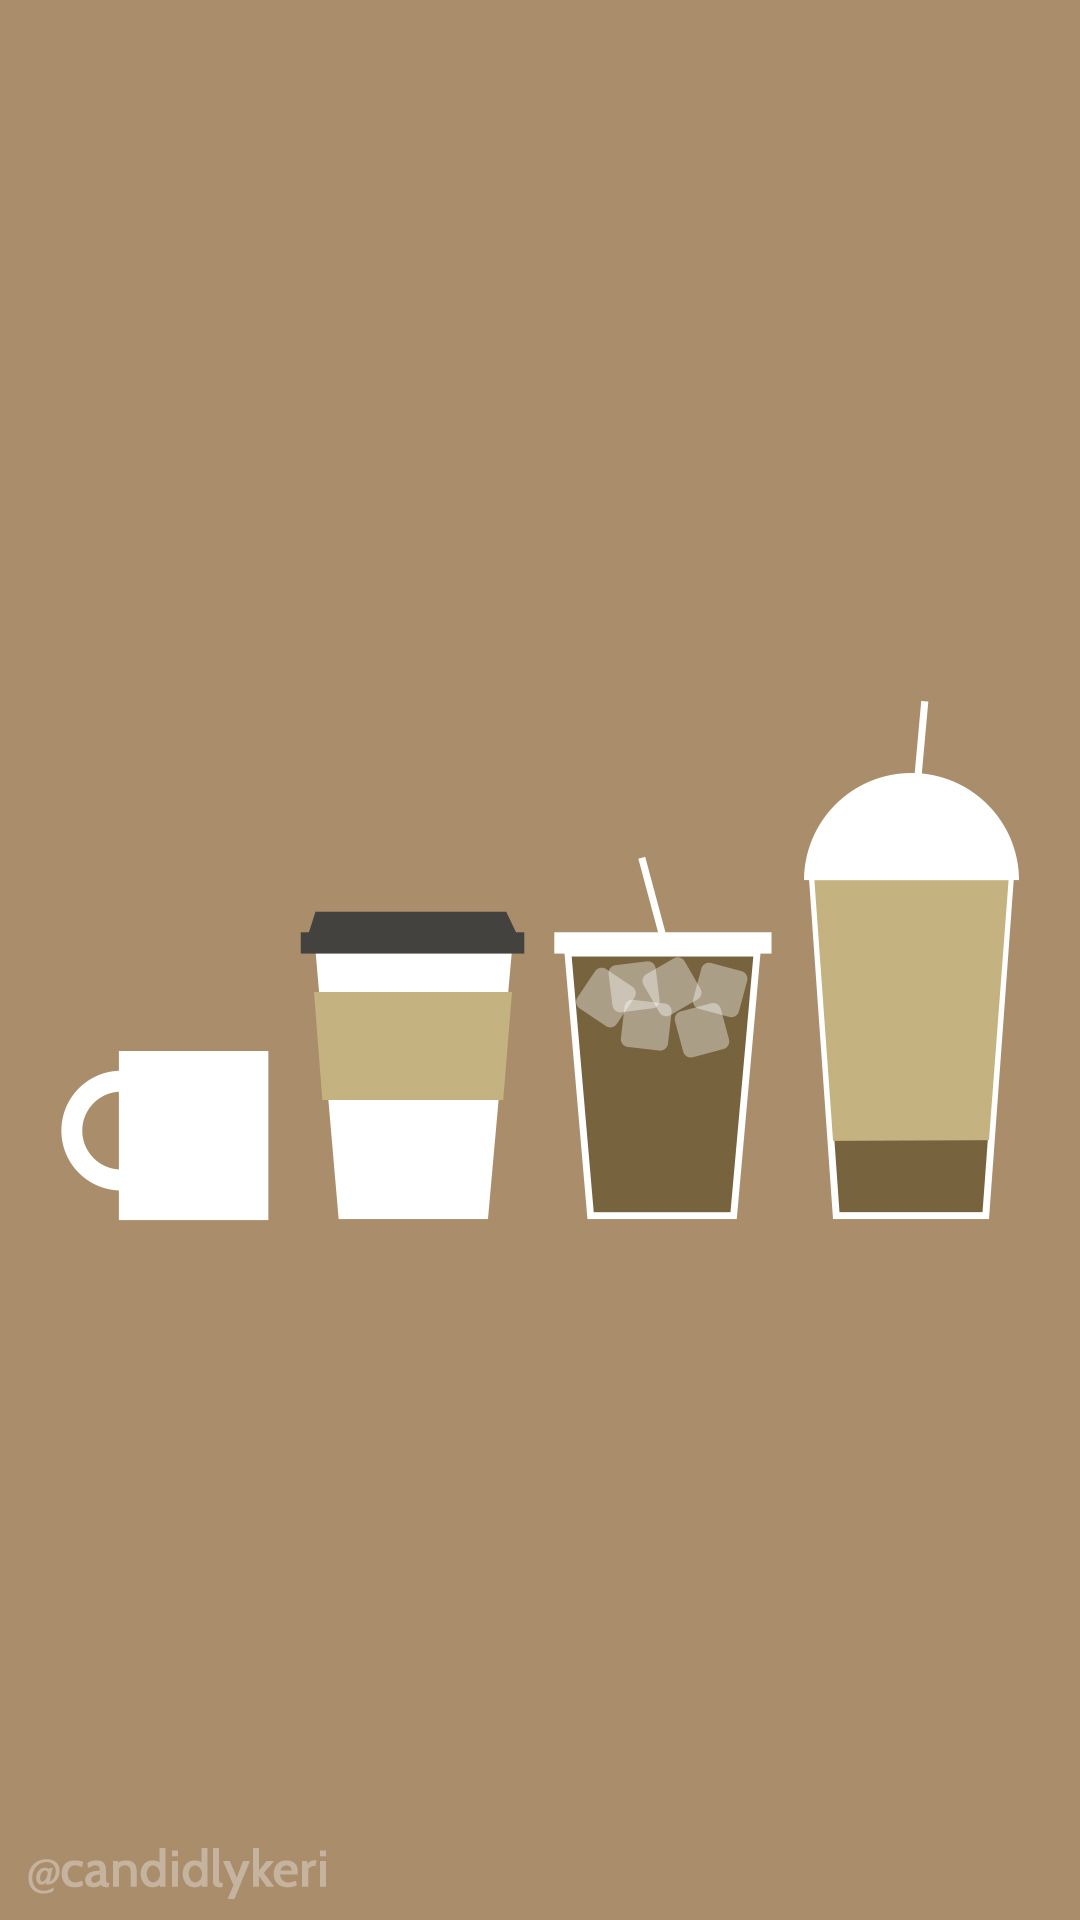 Love coffee Wallpapers For Iphone : cute cartoon coffee, latte, iced coffee wallpaper you can download for free on the blog! For any ...